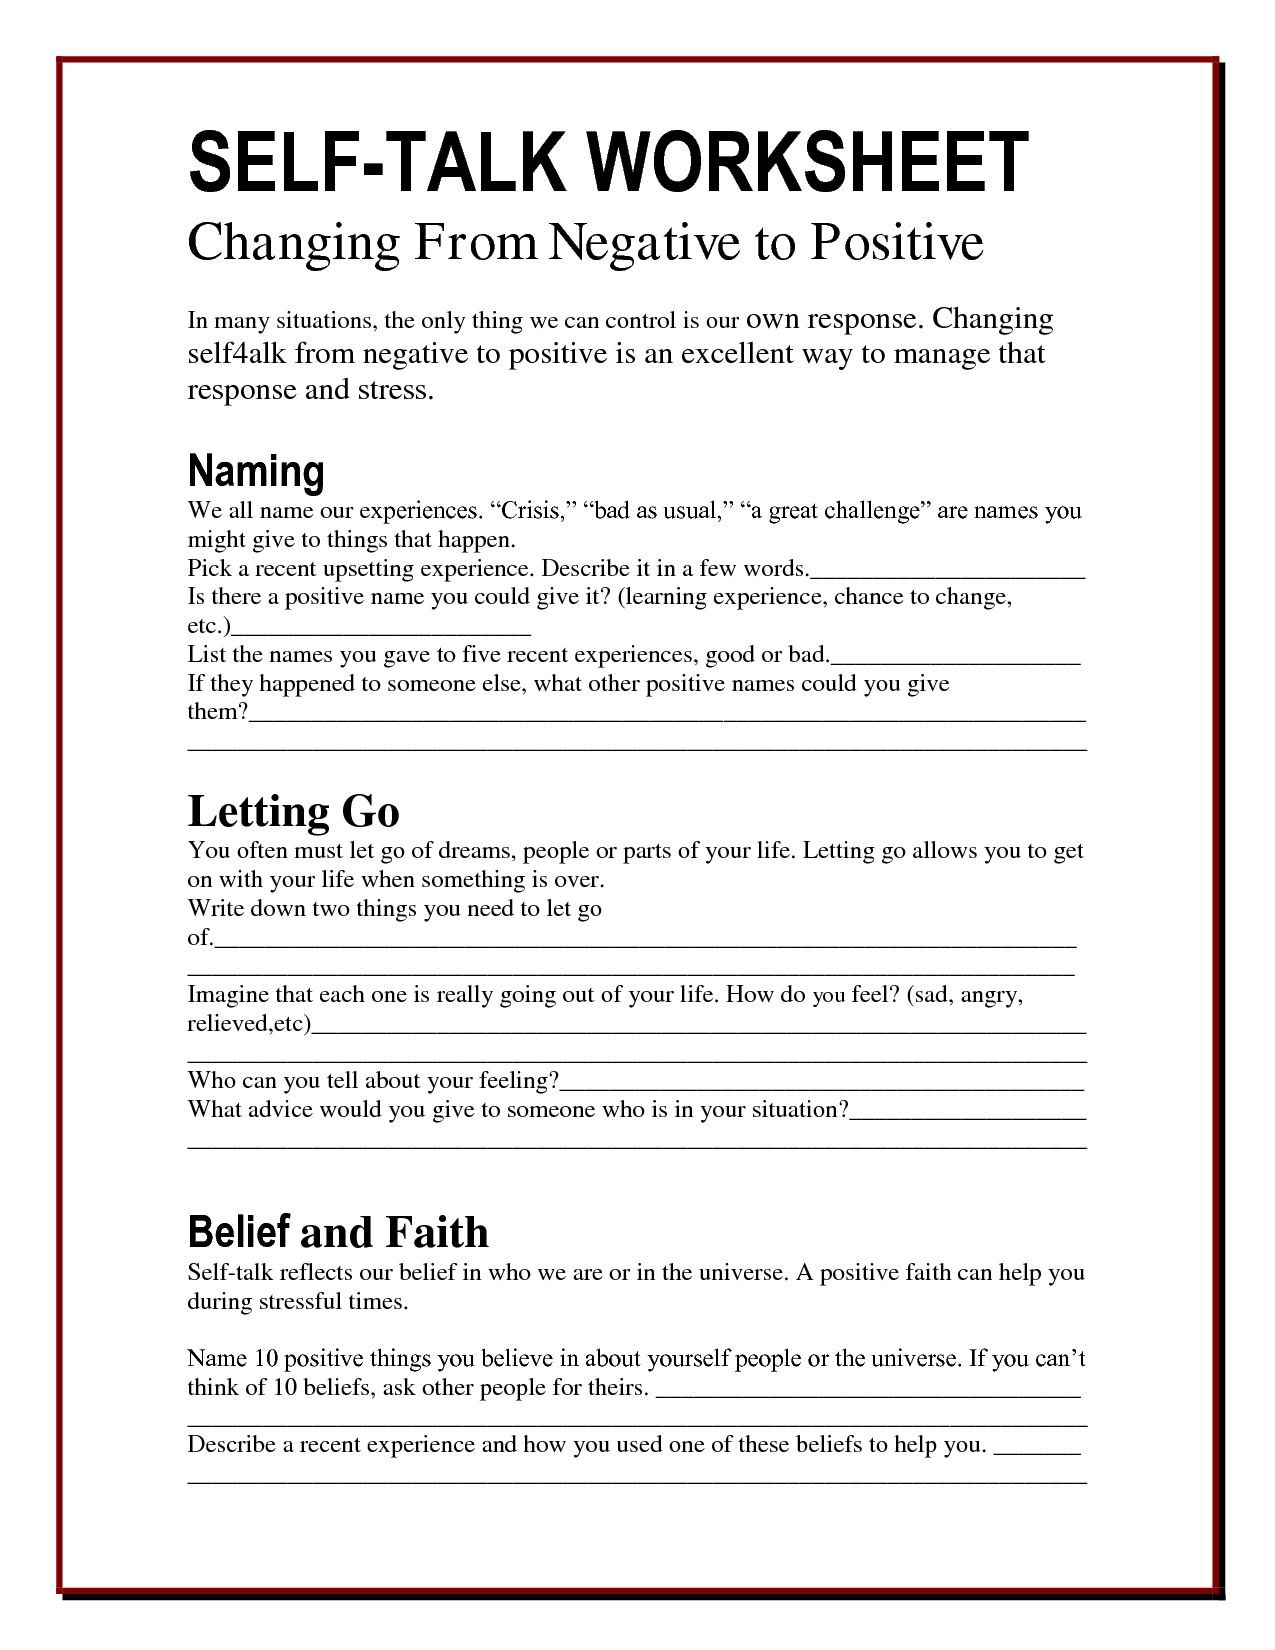 Anger Worksheets | Counseling - Worksheets - Printables | Therapy | Printable Mental Health Worksheets